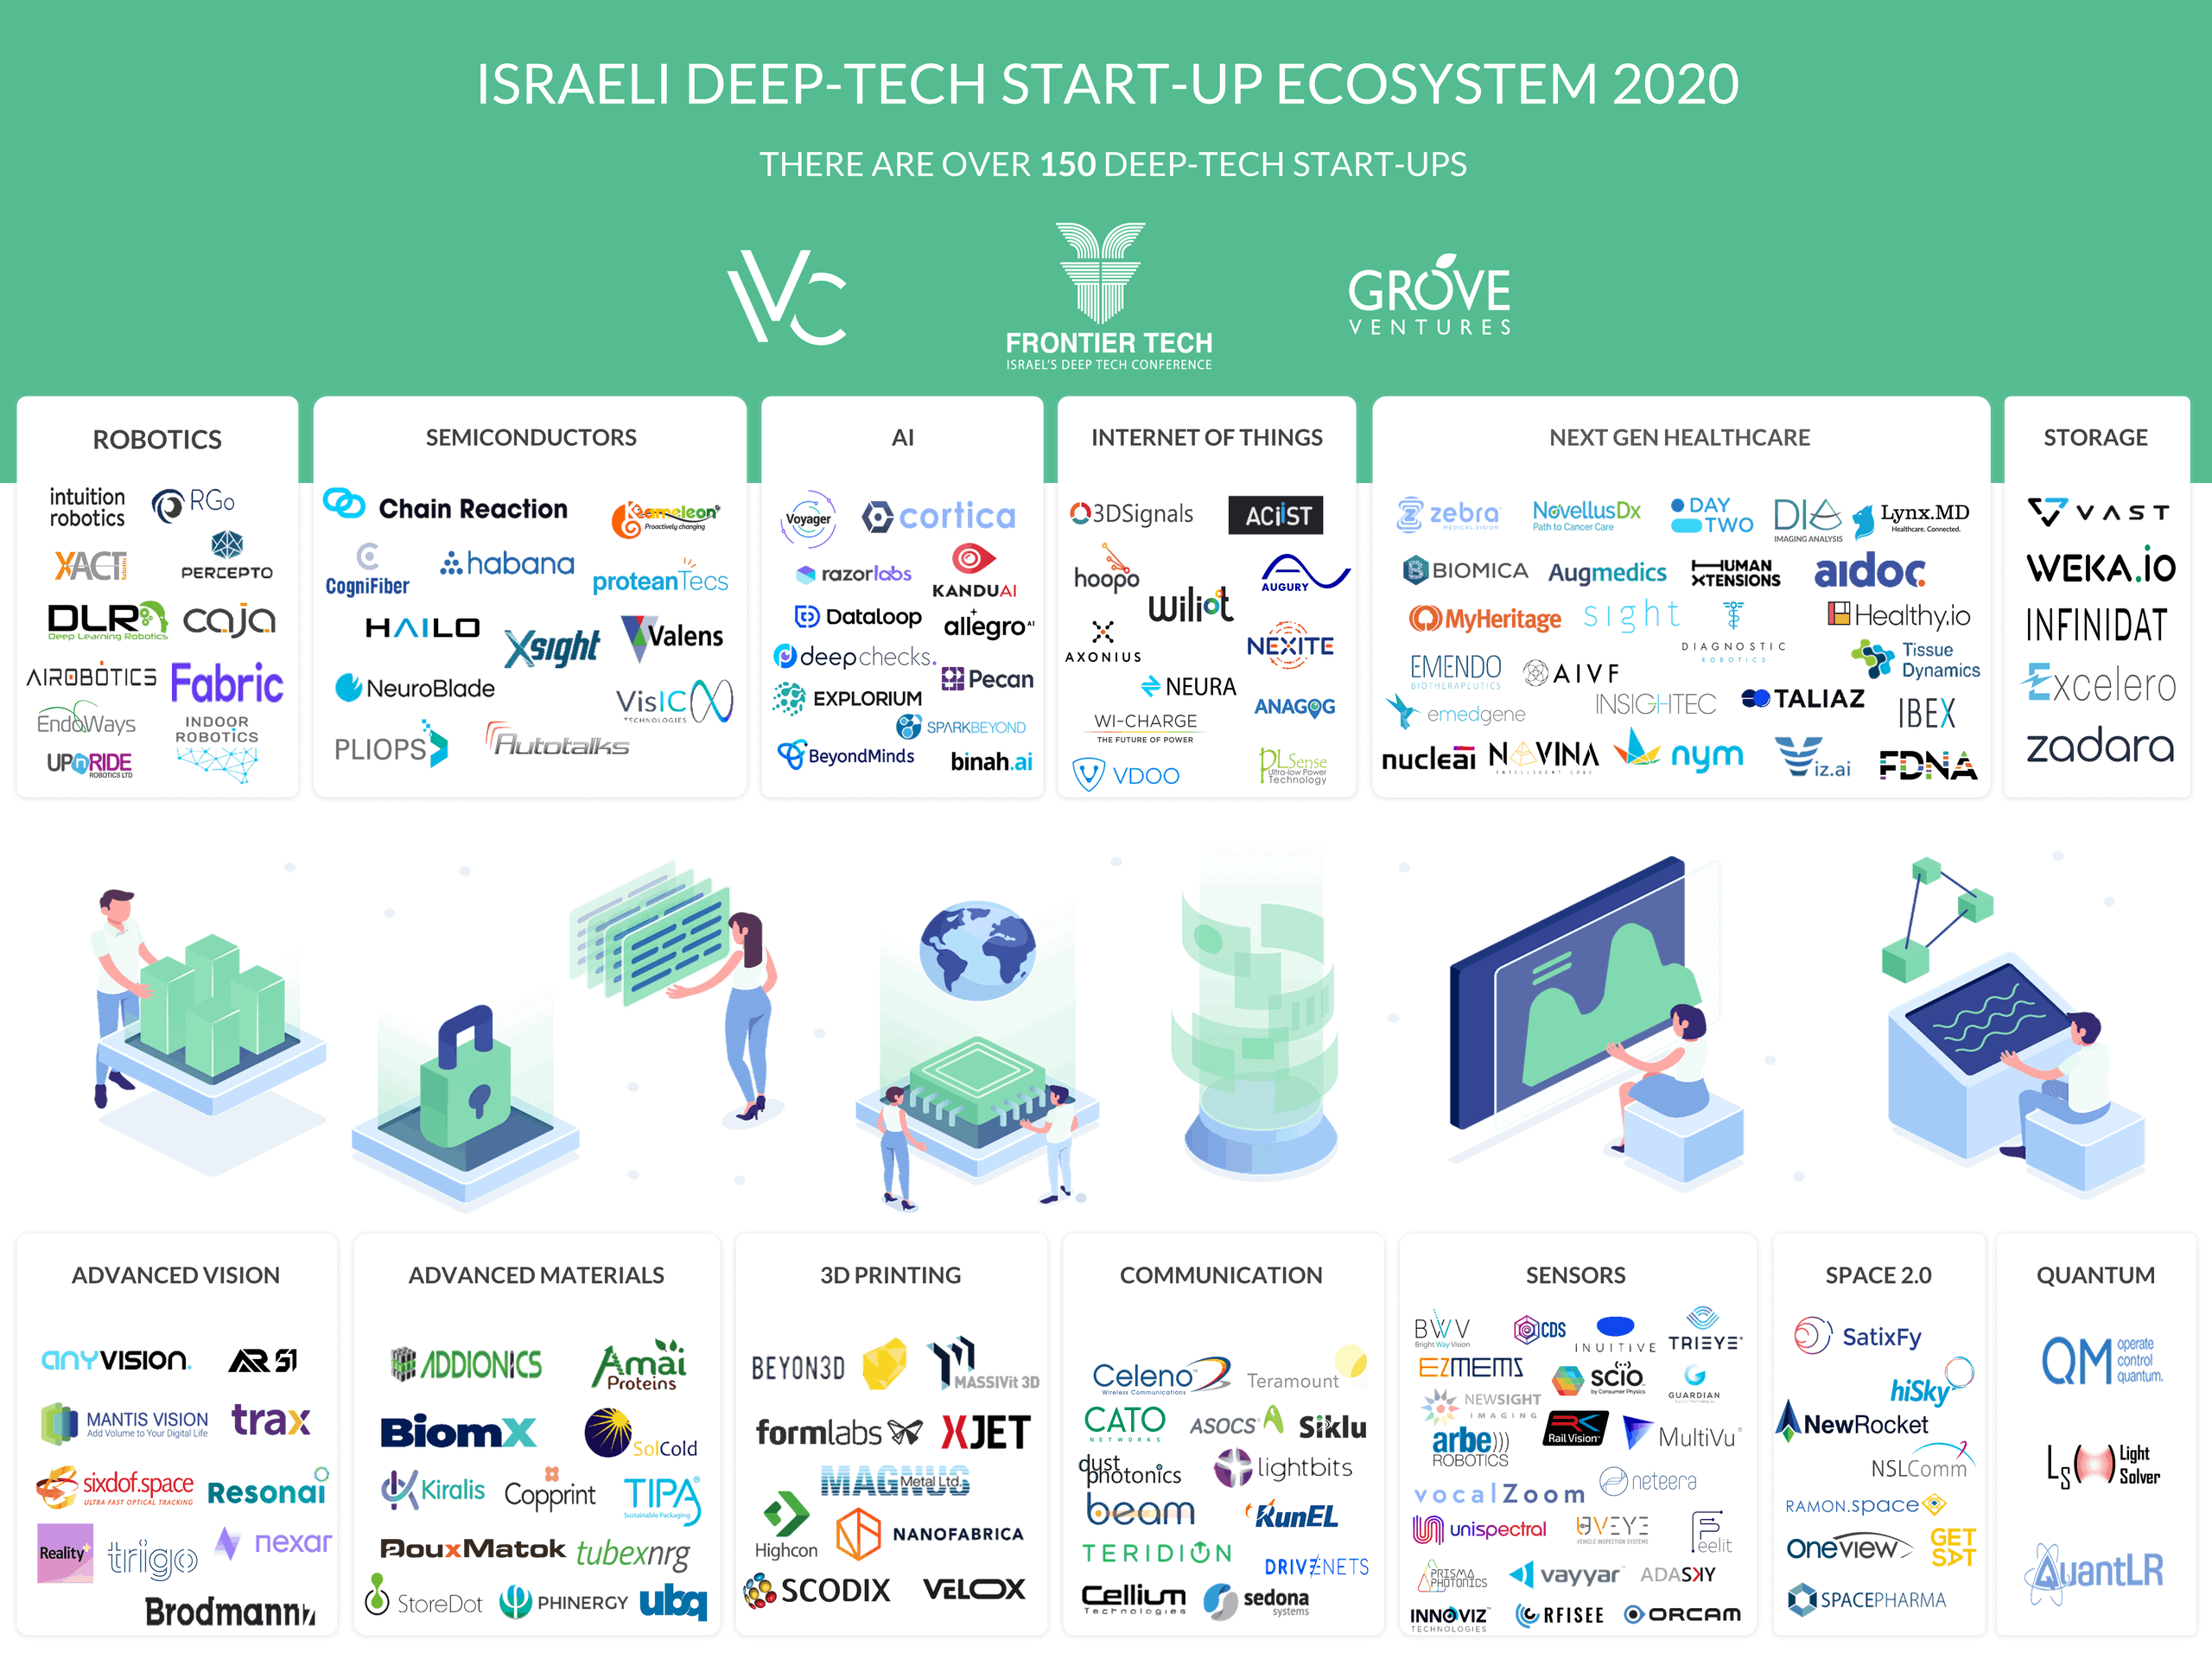 The Israeli Deep-Tech Ecosystem